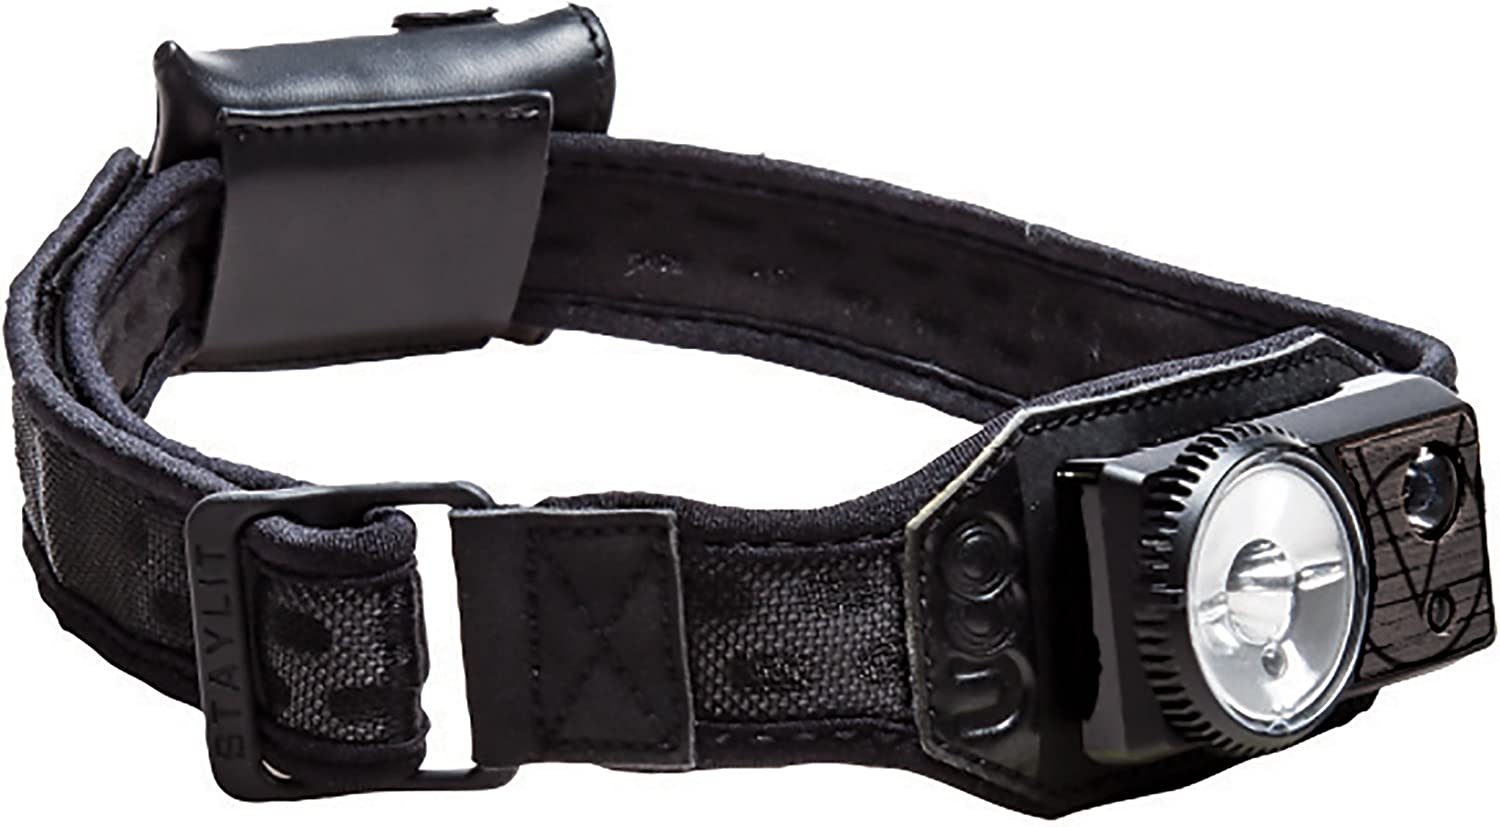 UCO Vapor 300 Lumen LED Headlamp with Variable Brightness Dial Control and Adjustable Strap